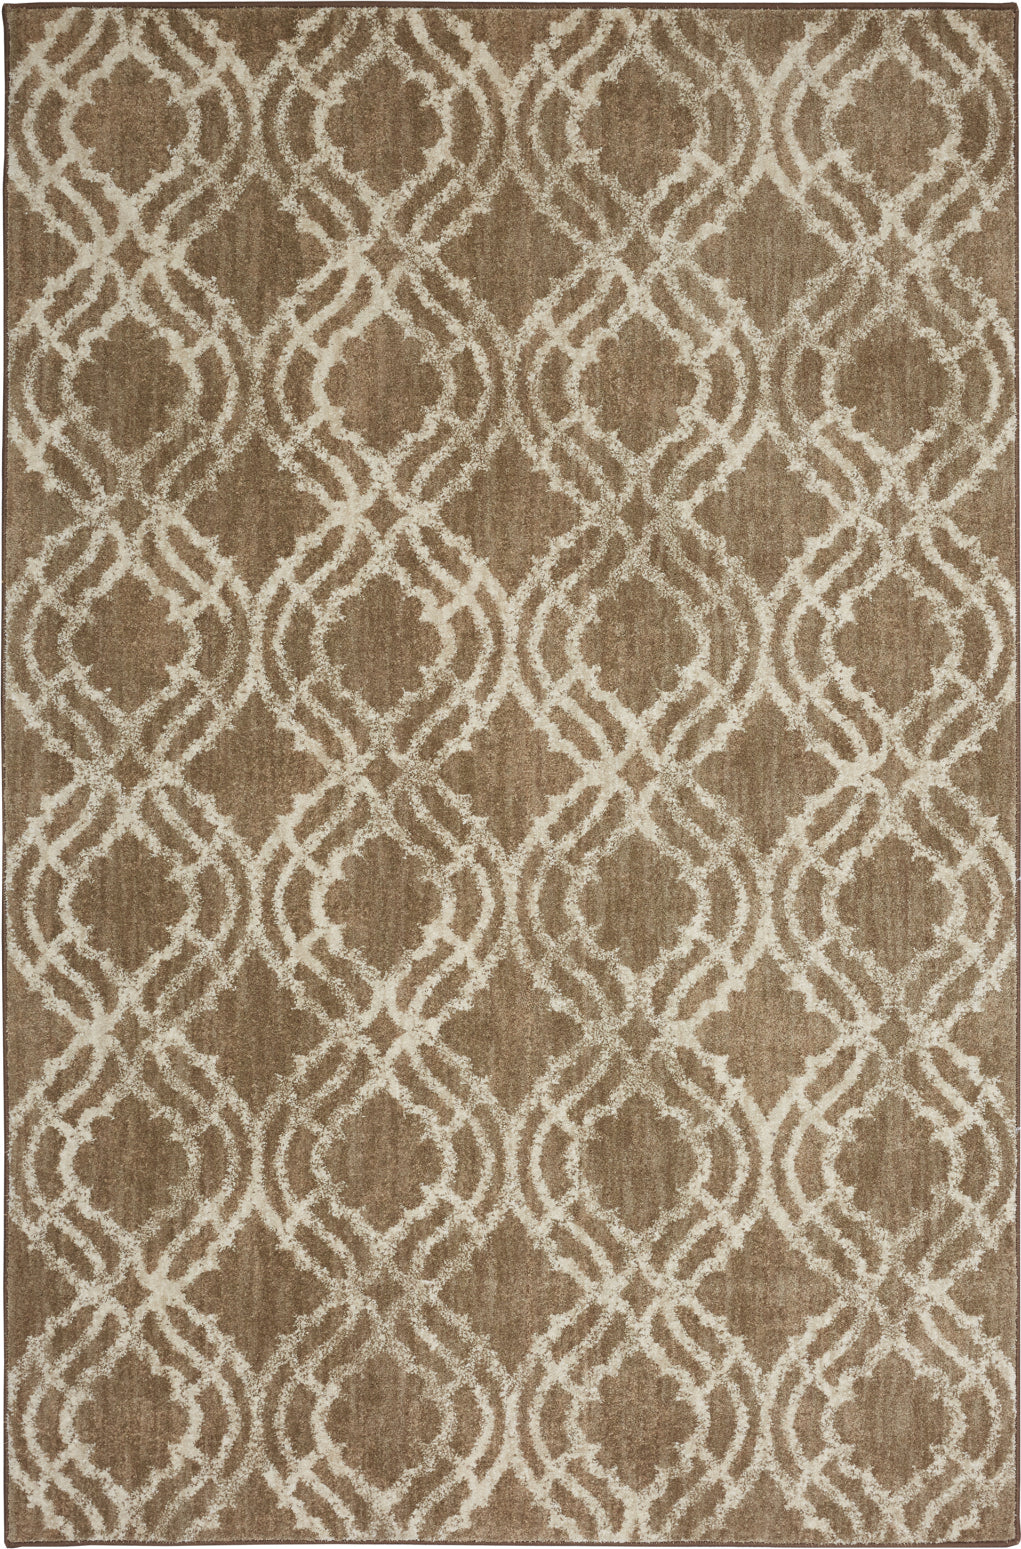 Karastan Euphoria Potterton Hazelnut Area Rug by Lattice main image